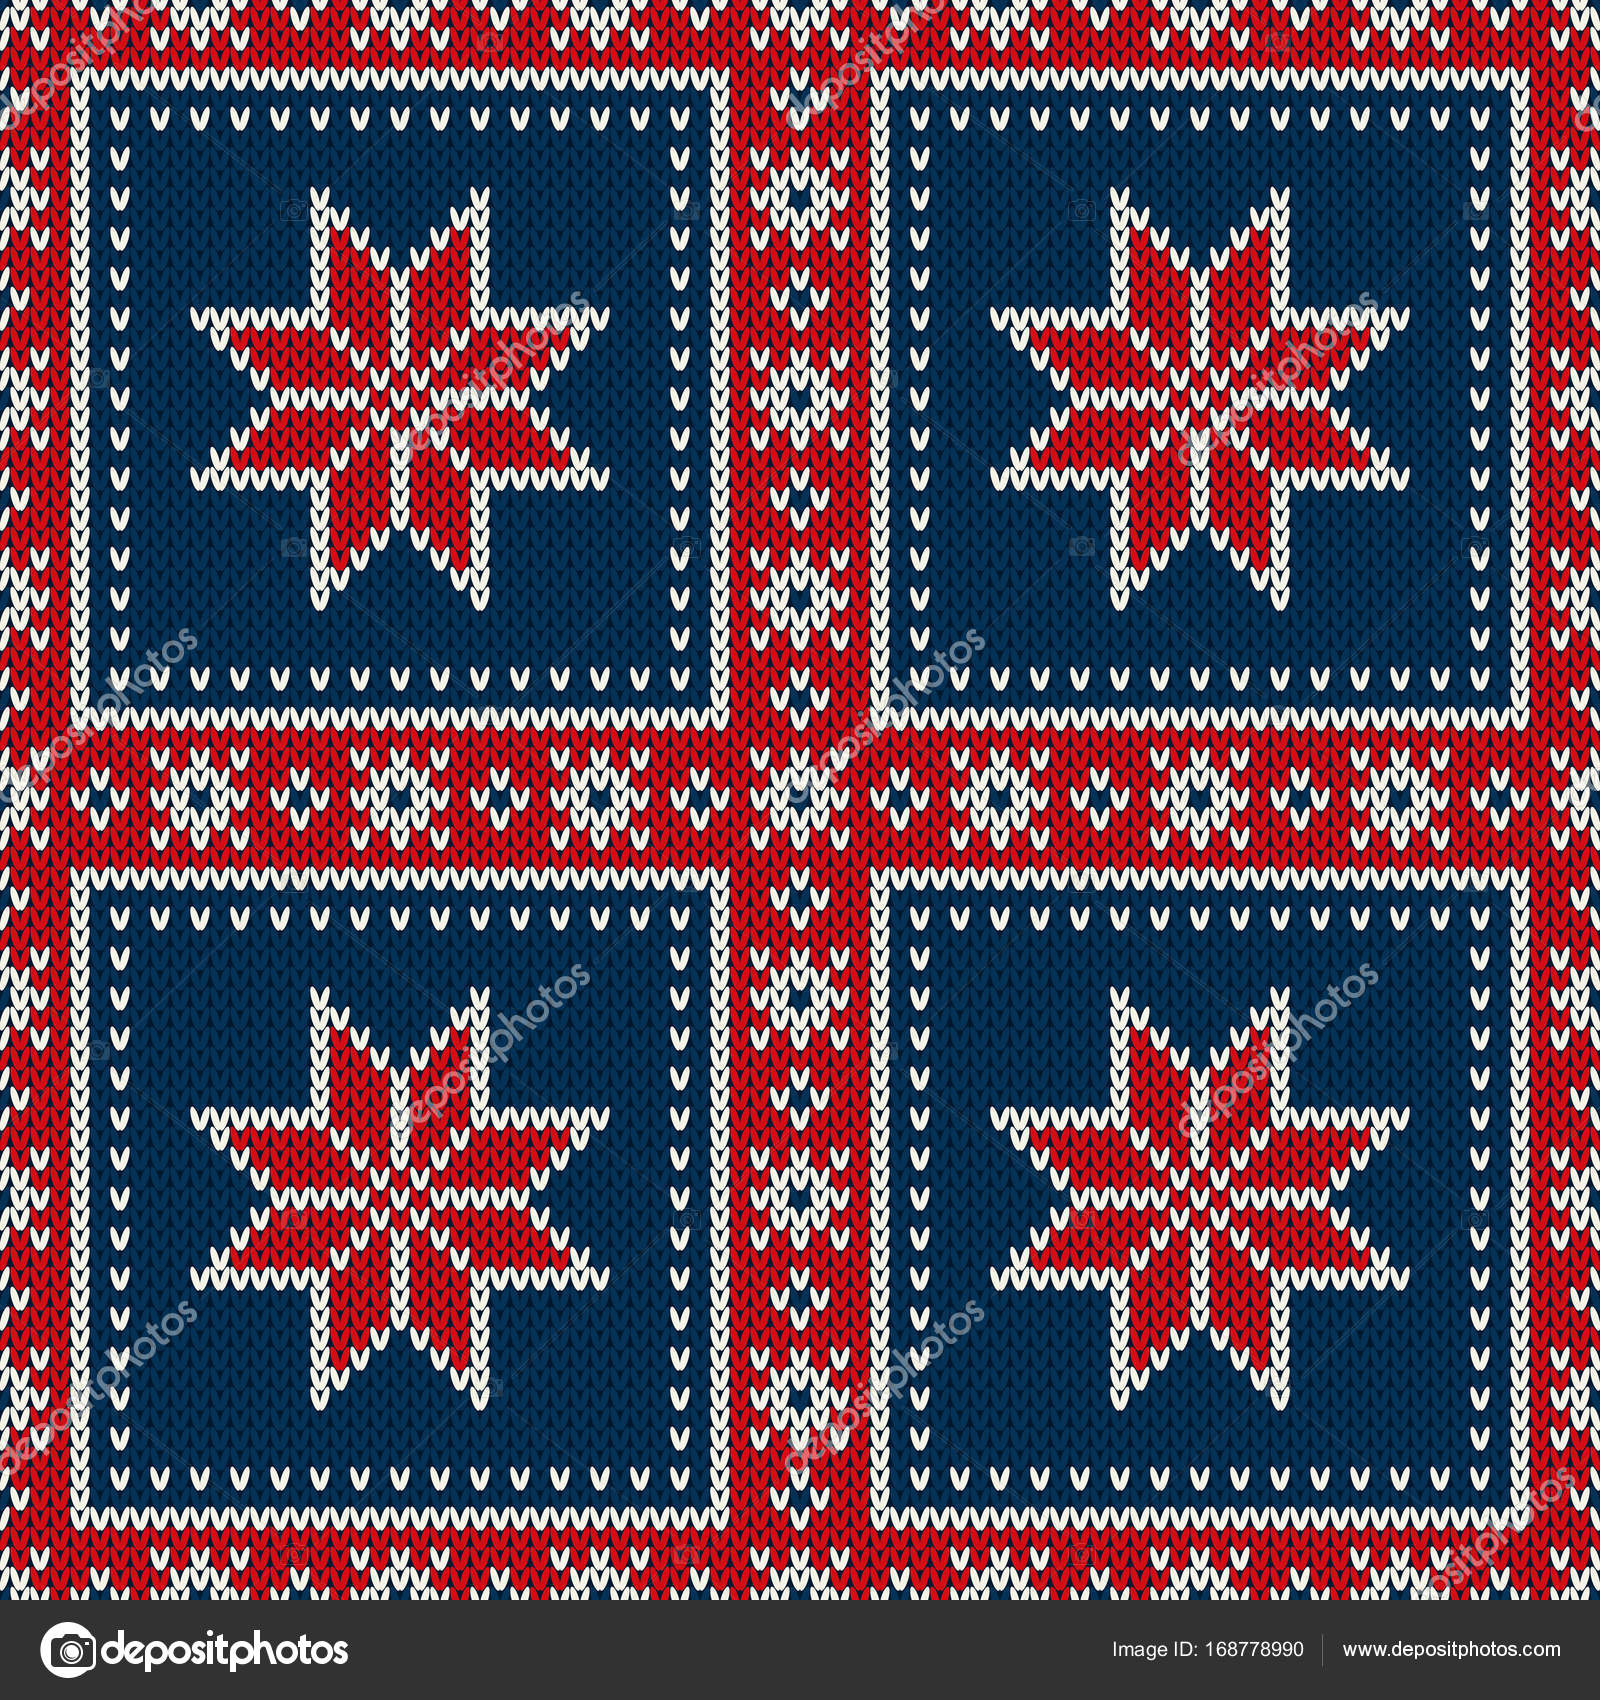 9ec69cdfbd6be Winter Holiday Seamless Knitted Pattern with a Snowflakes. Knitting  Patchwork Style Sweater Design. Wool